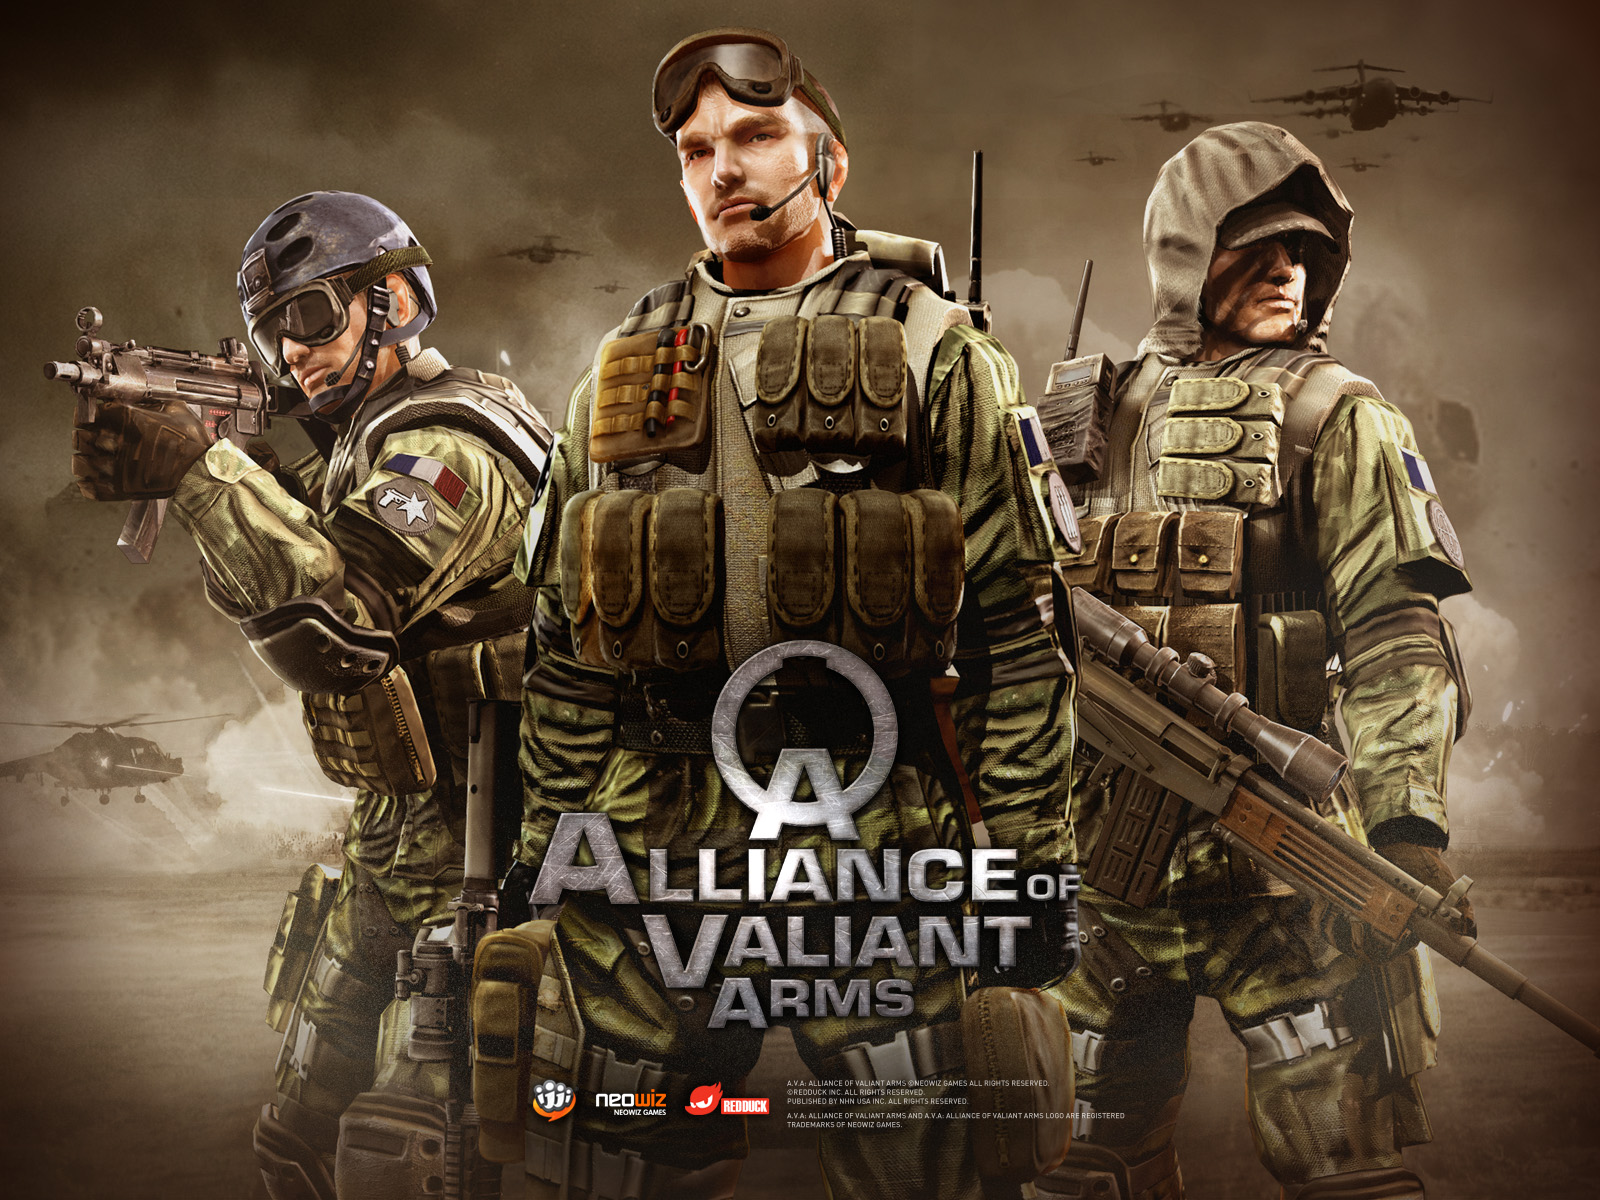 A.V.A. Alliance of Valiant Arms End of Mission